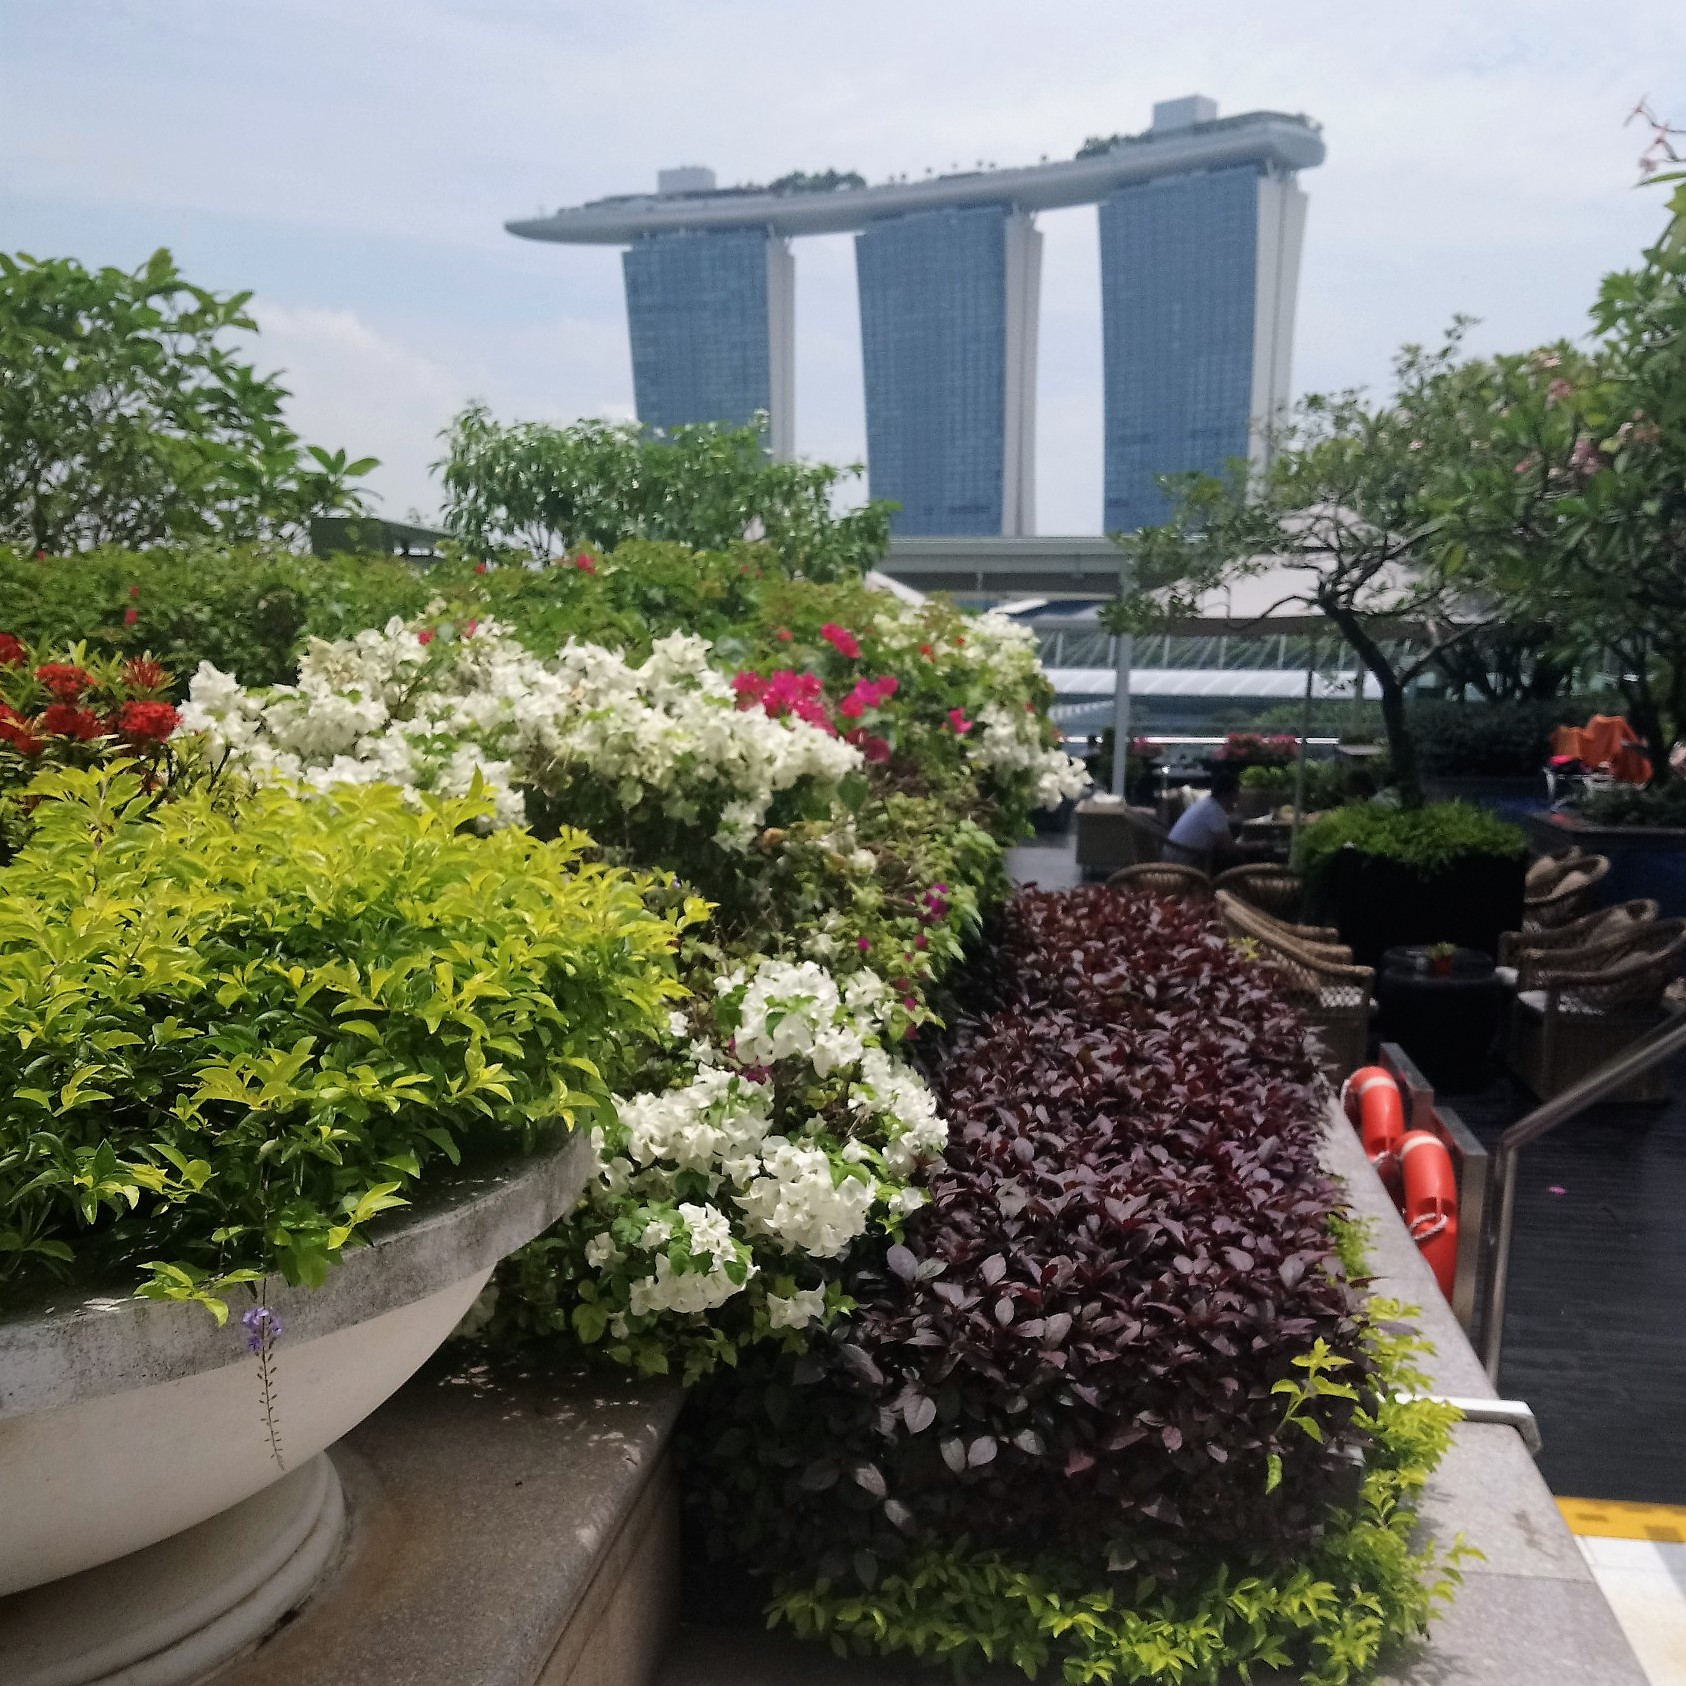 View of Marina Bay Sands from the rooftop gardens at The Fullerton Bay Hotel Singapore